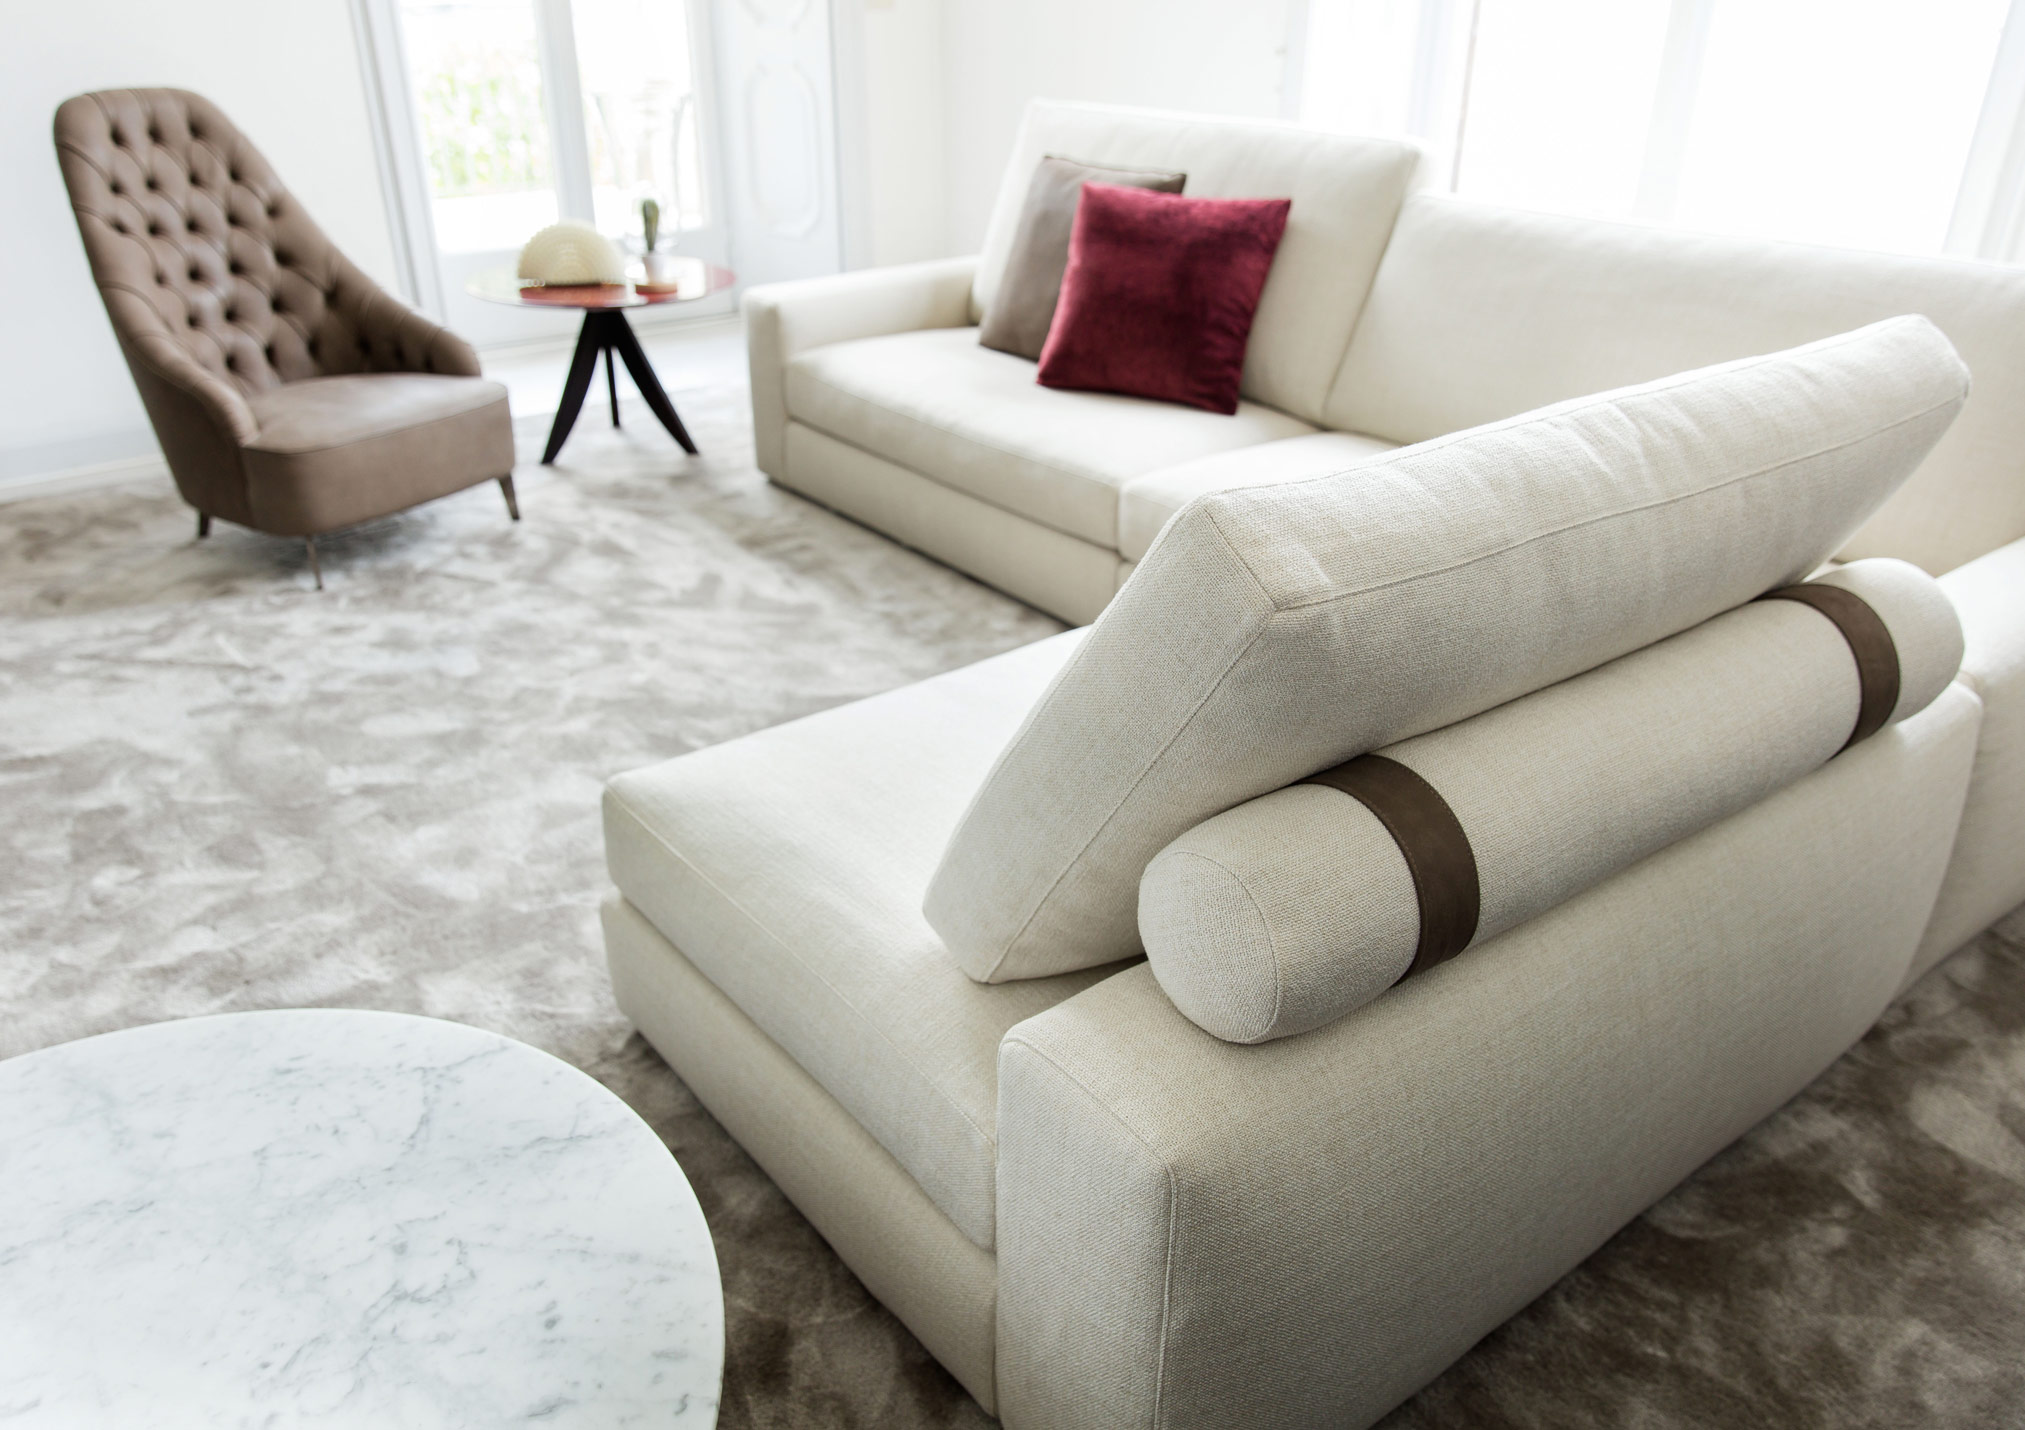 Joey couch comfort version with soft roll cushions and Nabuk bands